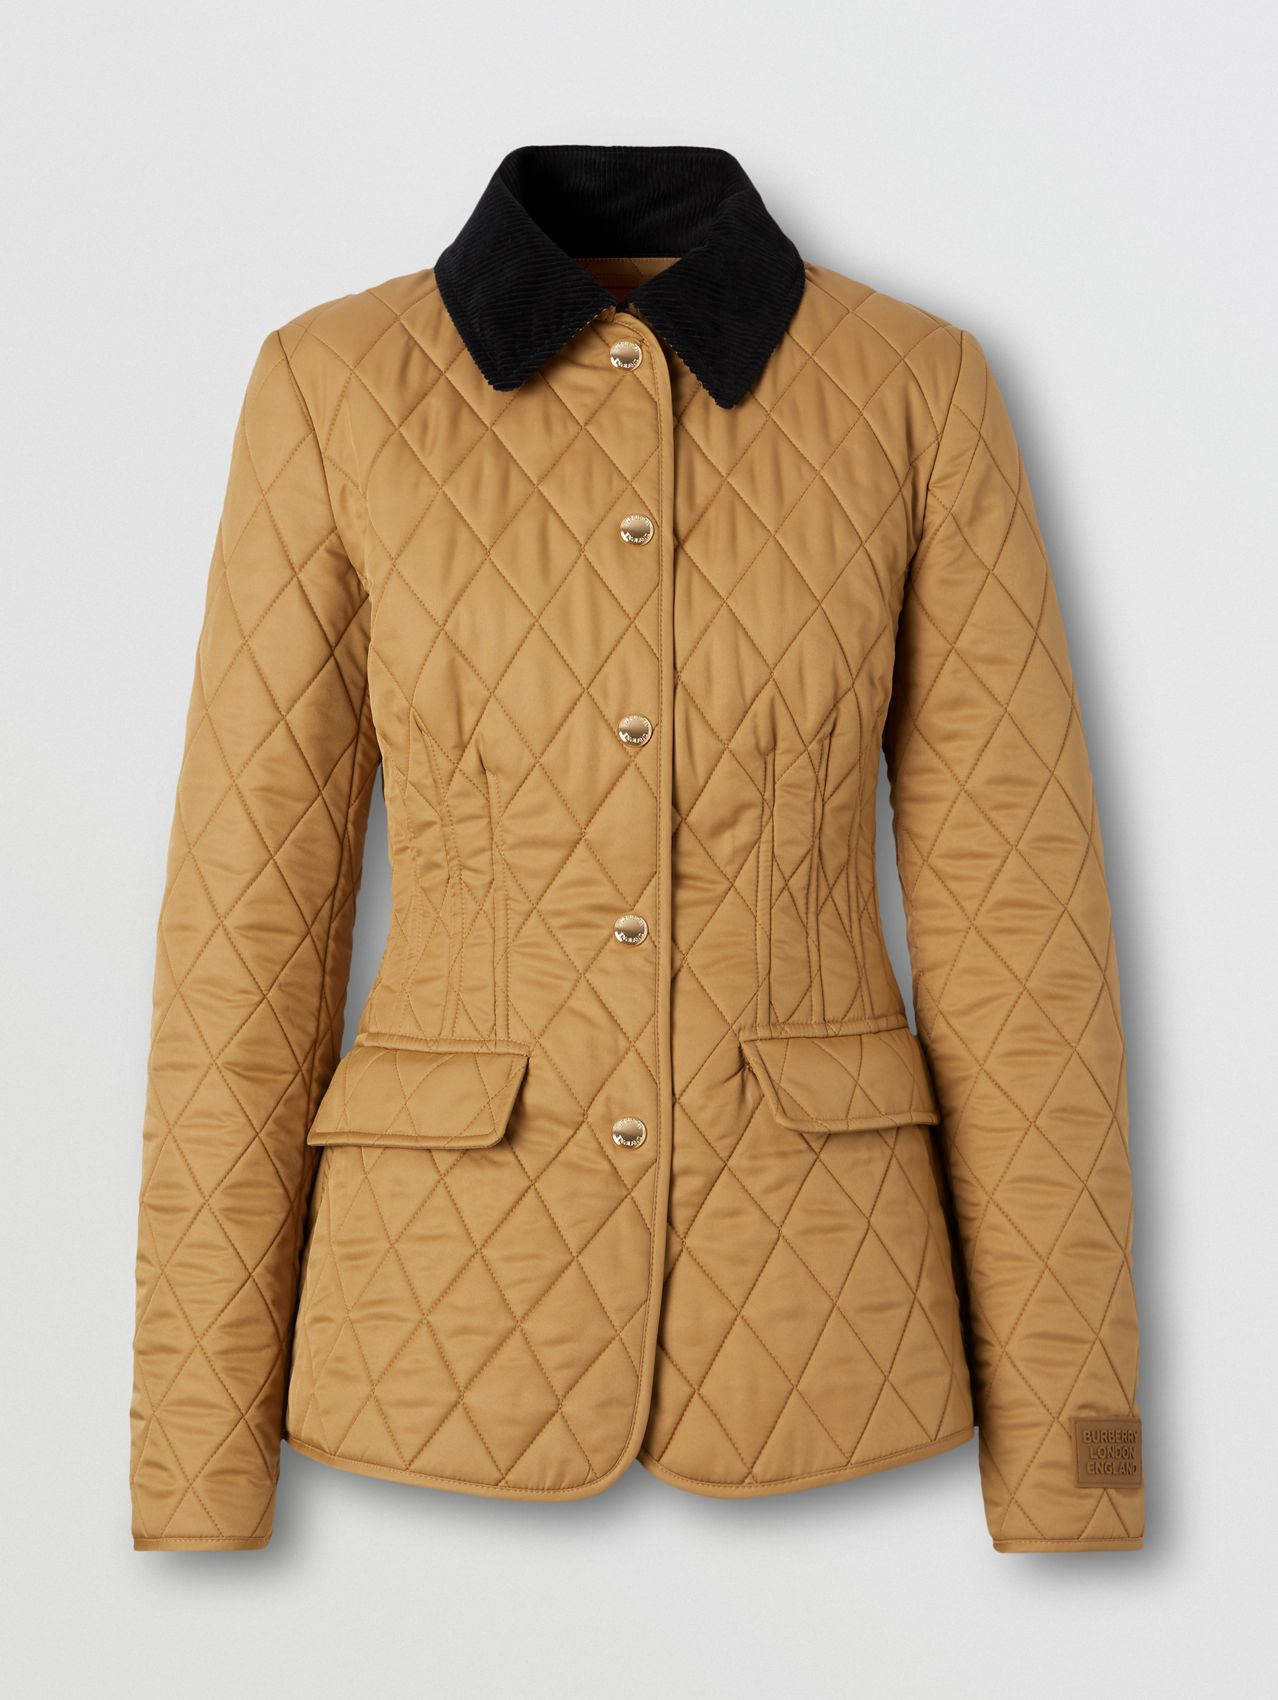 Country-Jacke in Rautensteppung mit Cordkragen (Camelfarben)